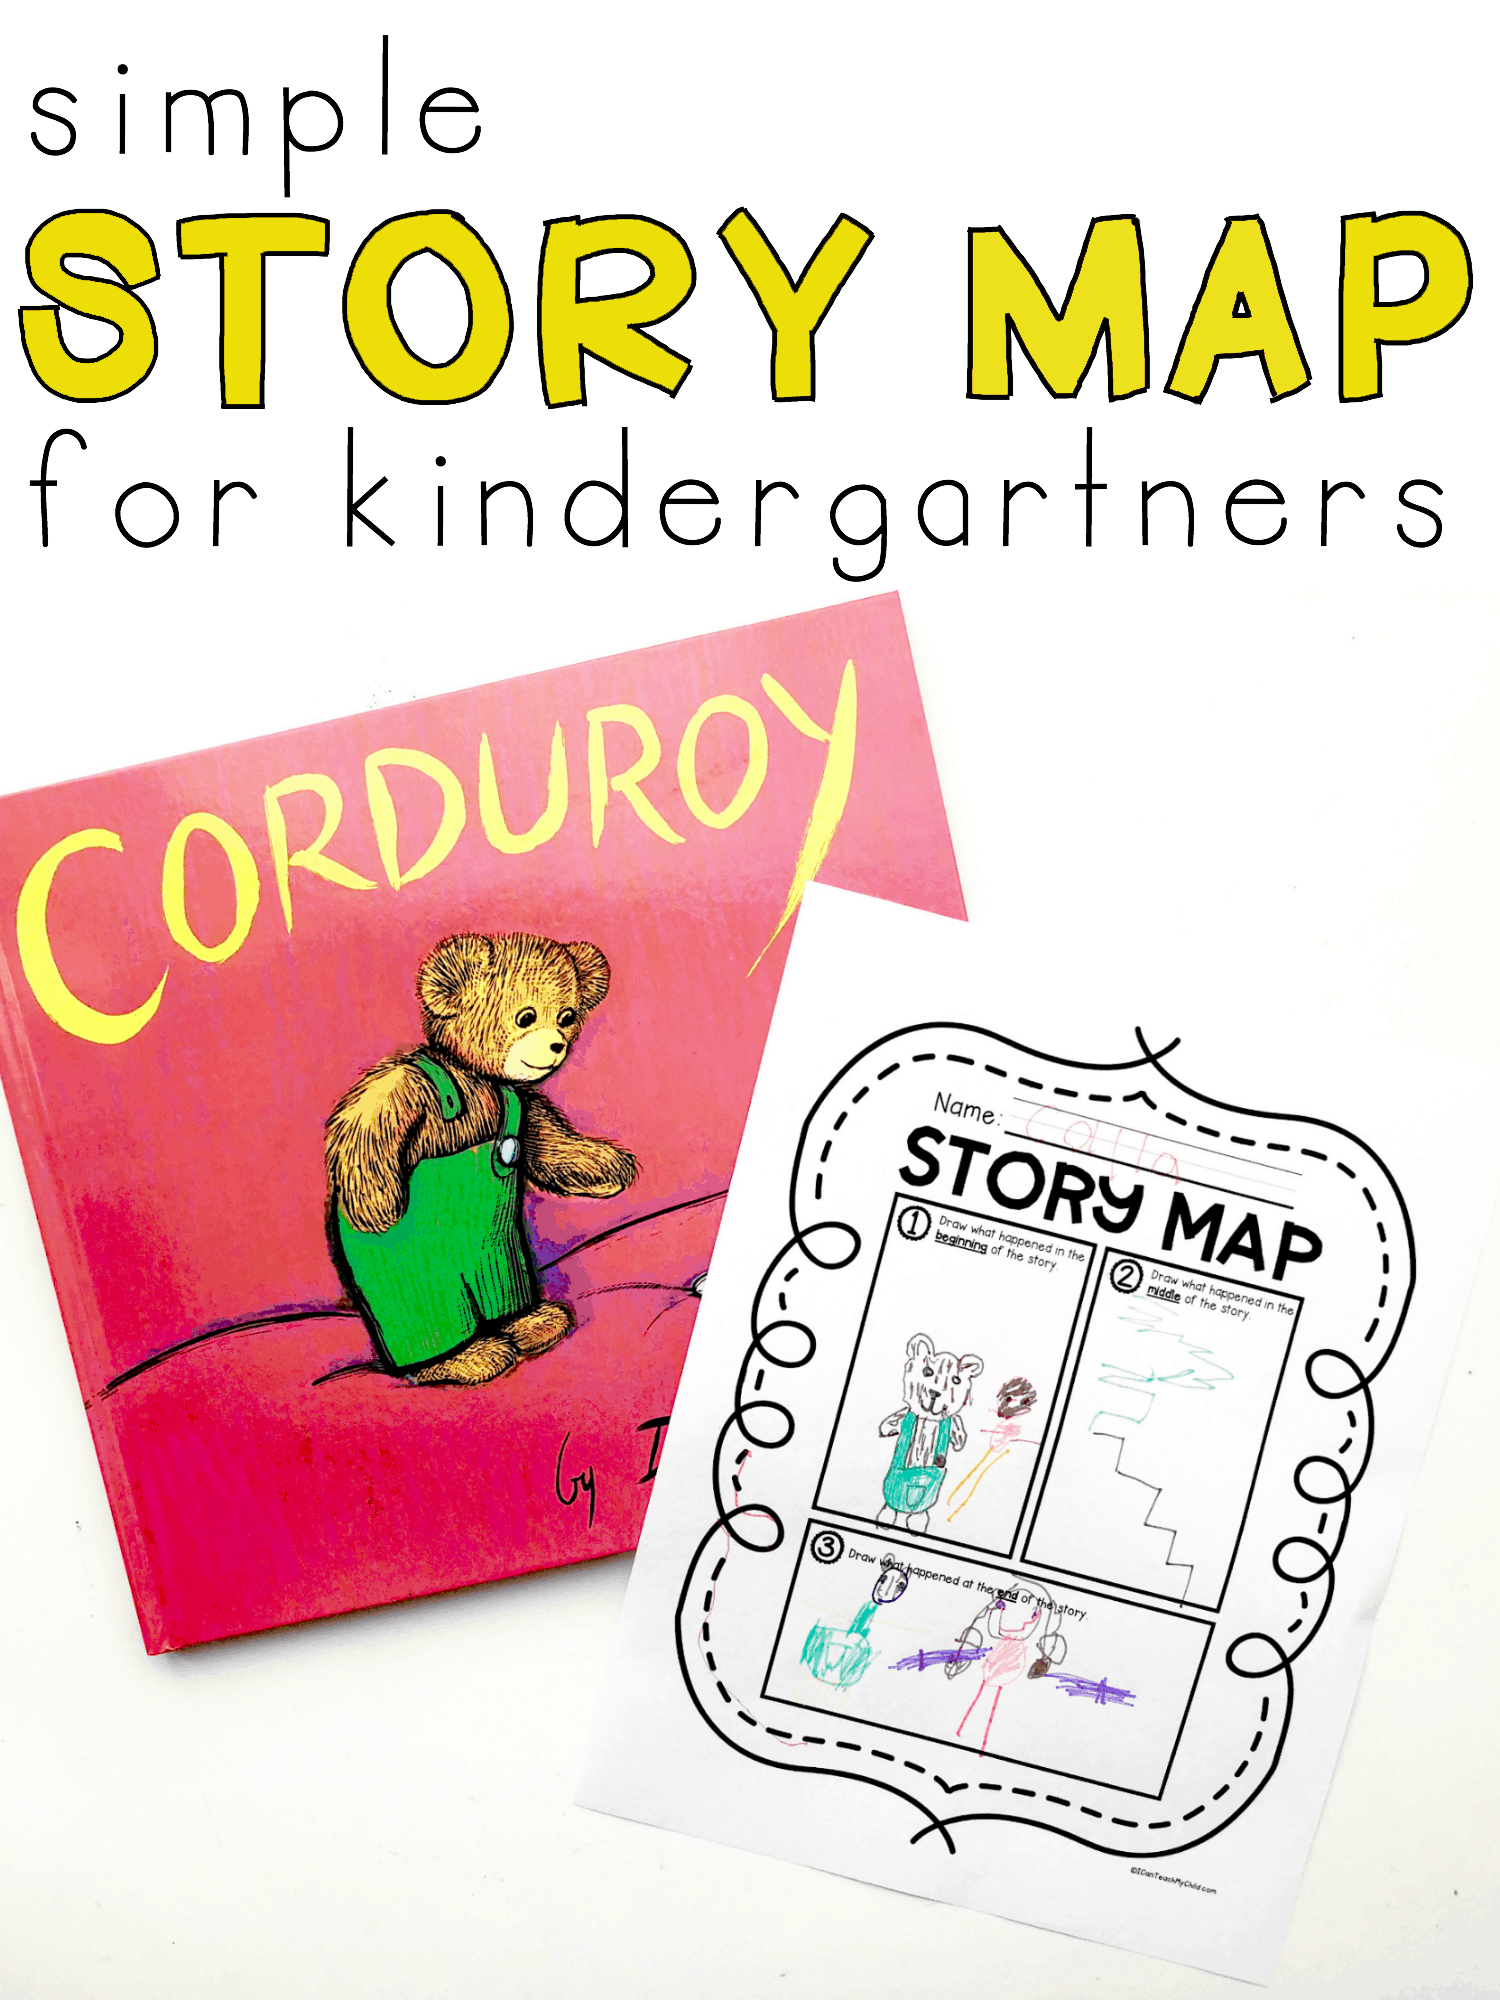 photo relating to Printable Story Map identify Basic Tale Map Printable for Kindergartners - I Can Educate